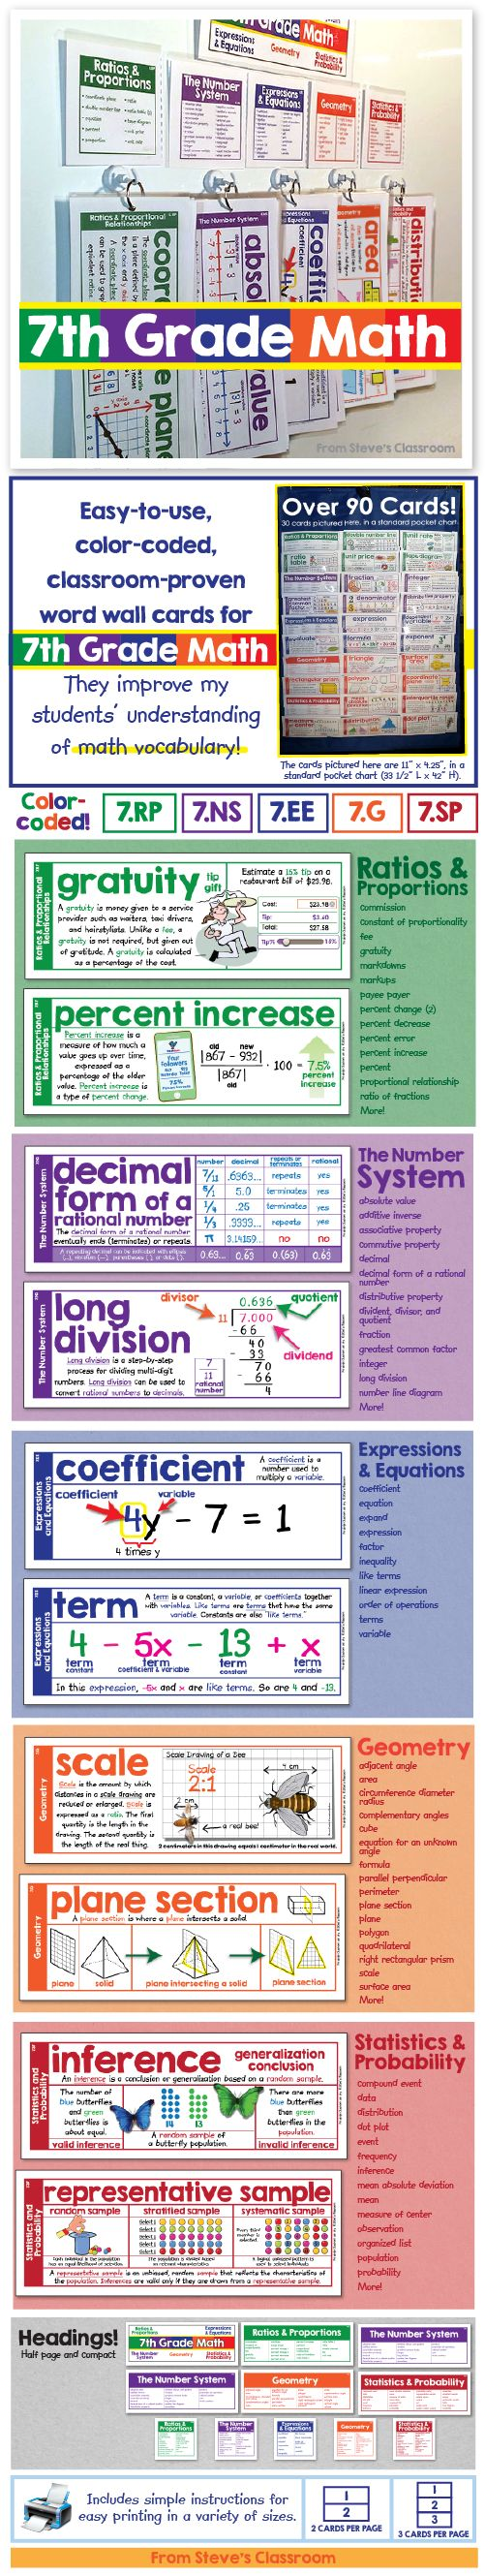 Bring 7th grade math vocabulary to life with these easy-to-use word wall cards. The illustrations help students understand seventh grade math concepts like ratios and proportions, the number system, expressions and equations, geometry, and statistics. The color coding makes it easy to stay organized and identify the different domains, even from a distance.~